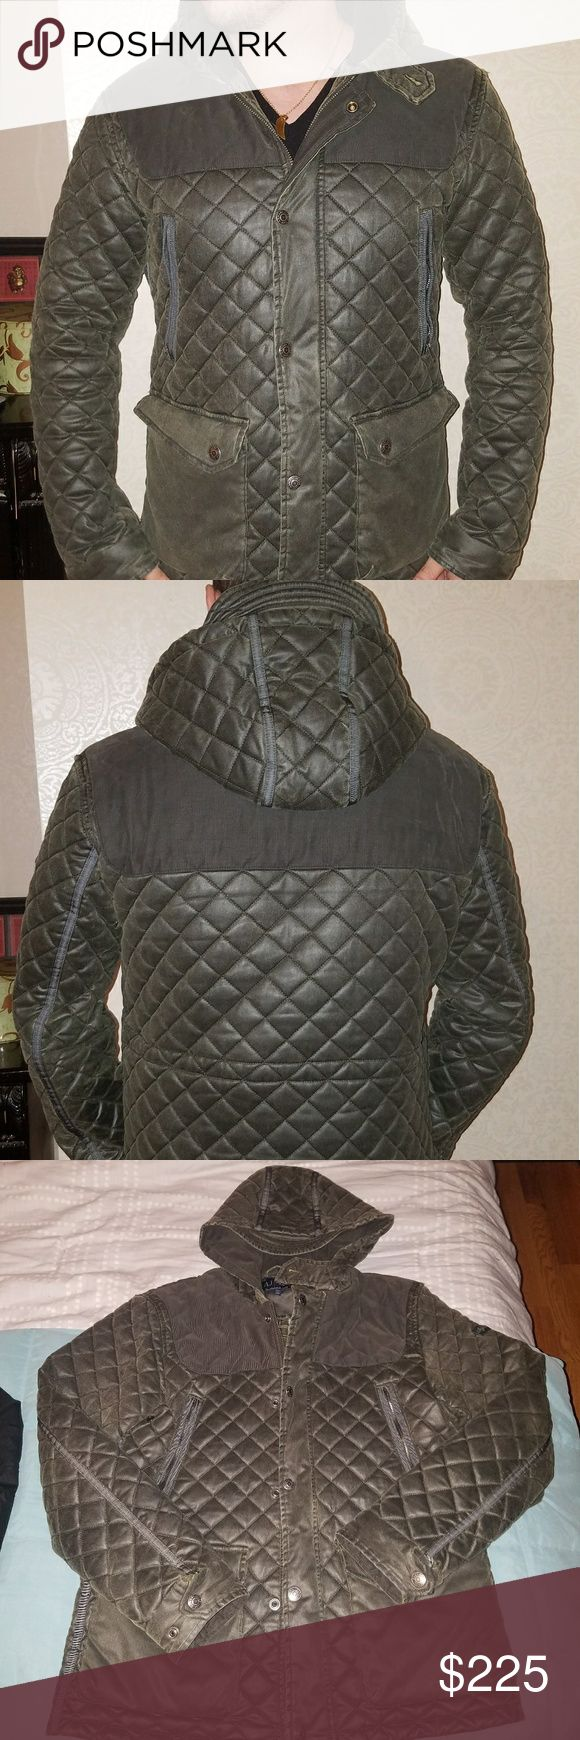 Aunthentic Armani Jeans Jacket Armani Jeans, size small, olive green, quilted,weather proof,  hooded jacket ?? Armani Jeans Jackets & Coats Puffers